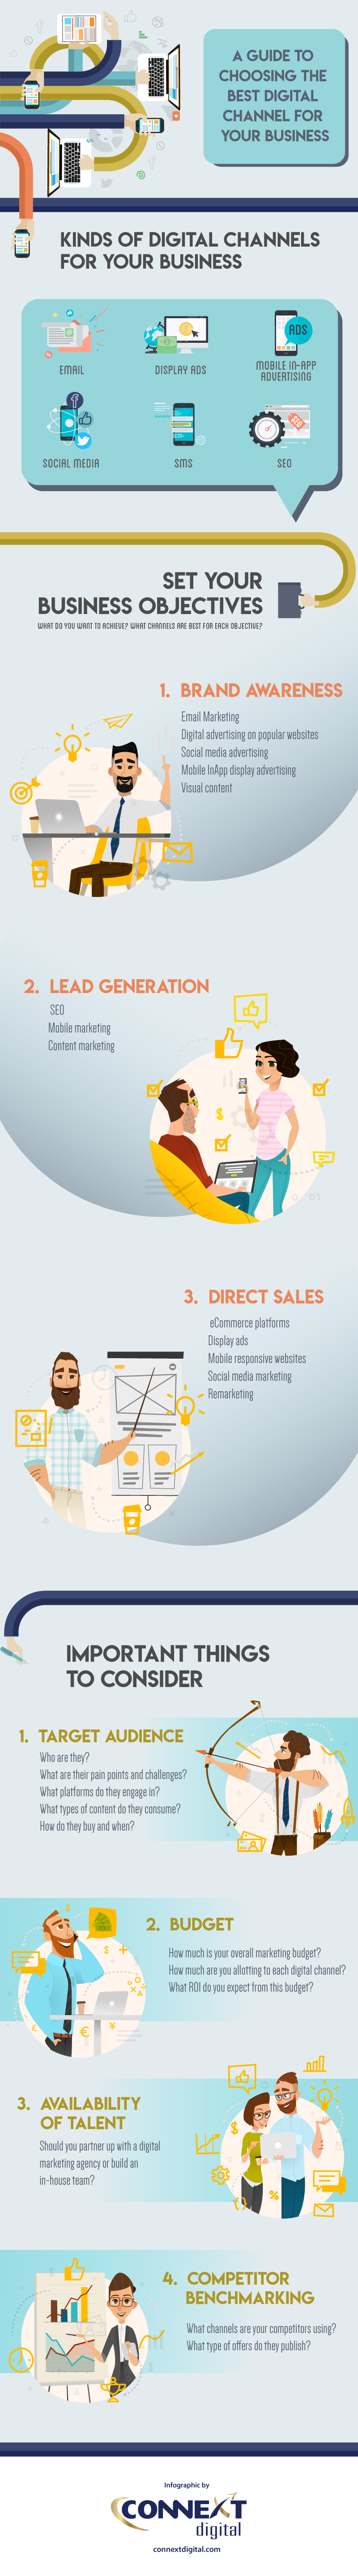 How toChoose a Digital Marketing Channel for Your Small Business